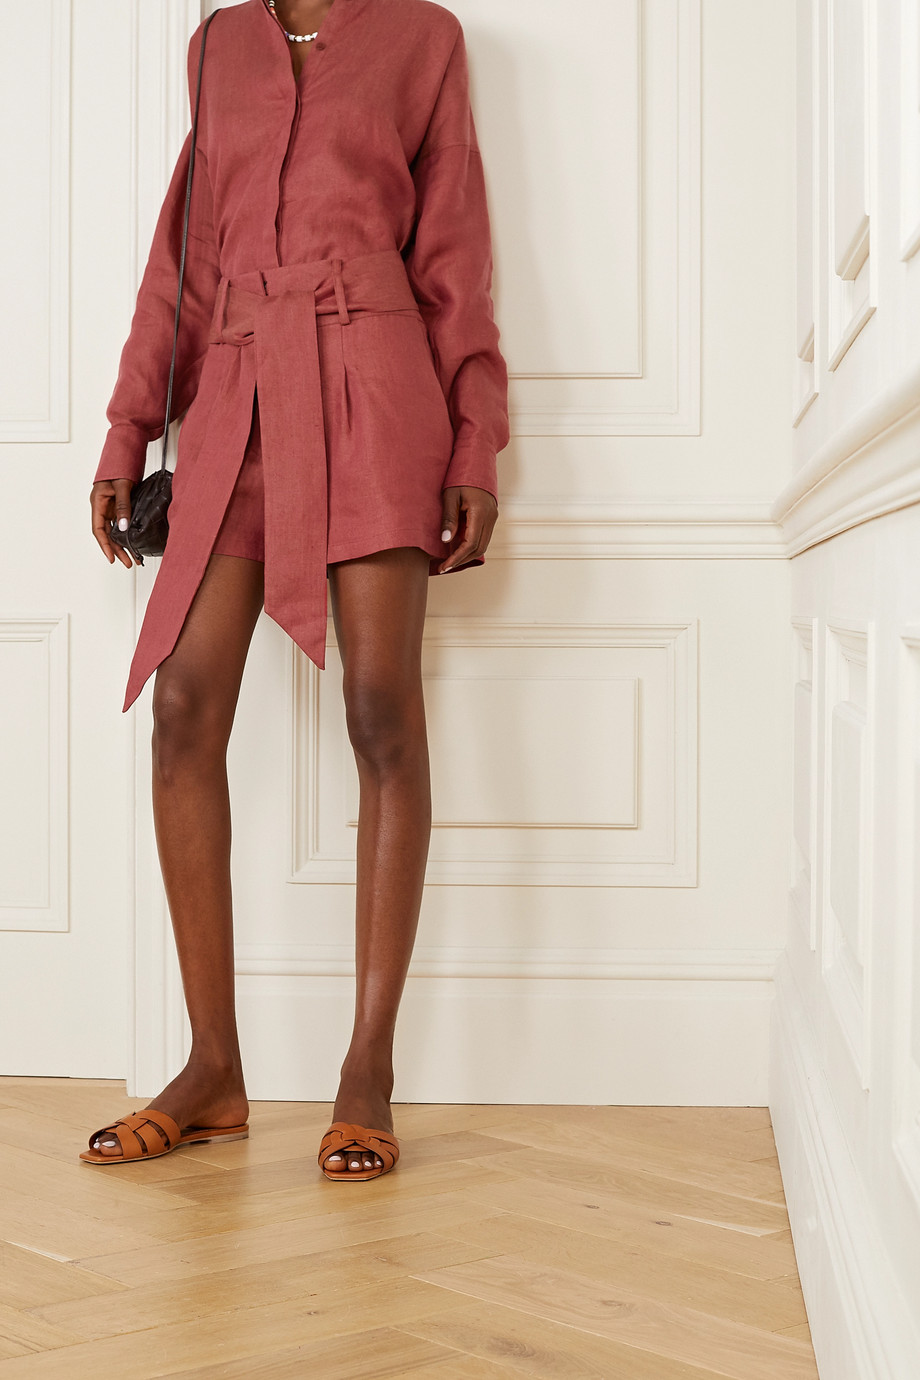 BONDI BORN + NET SUSTAIN Fancy belted linen shorts